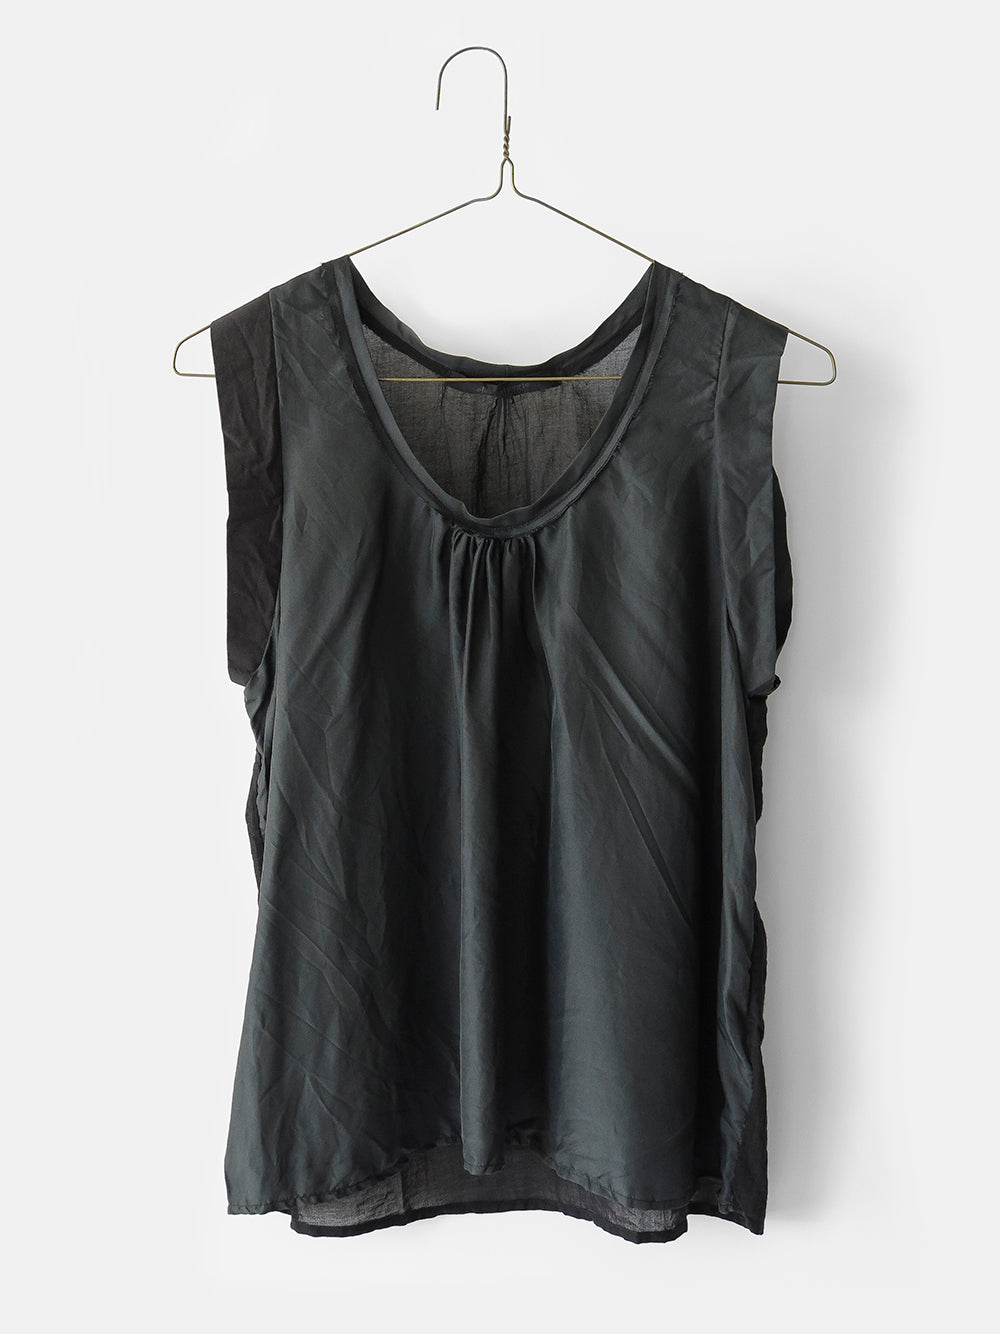 elsa esturgie attention top in black